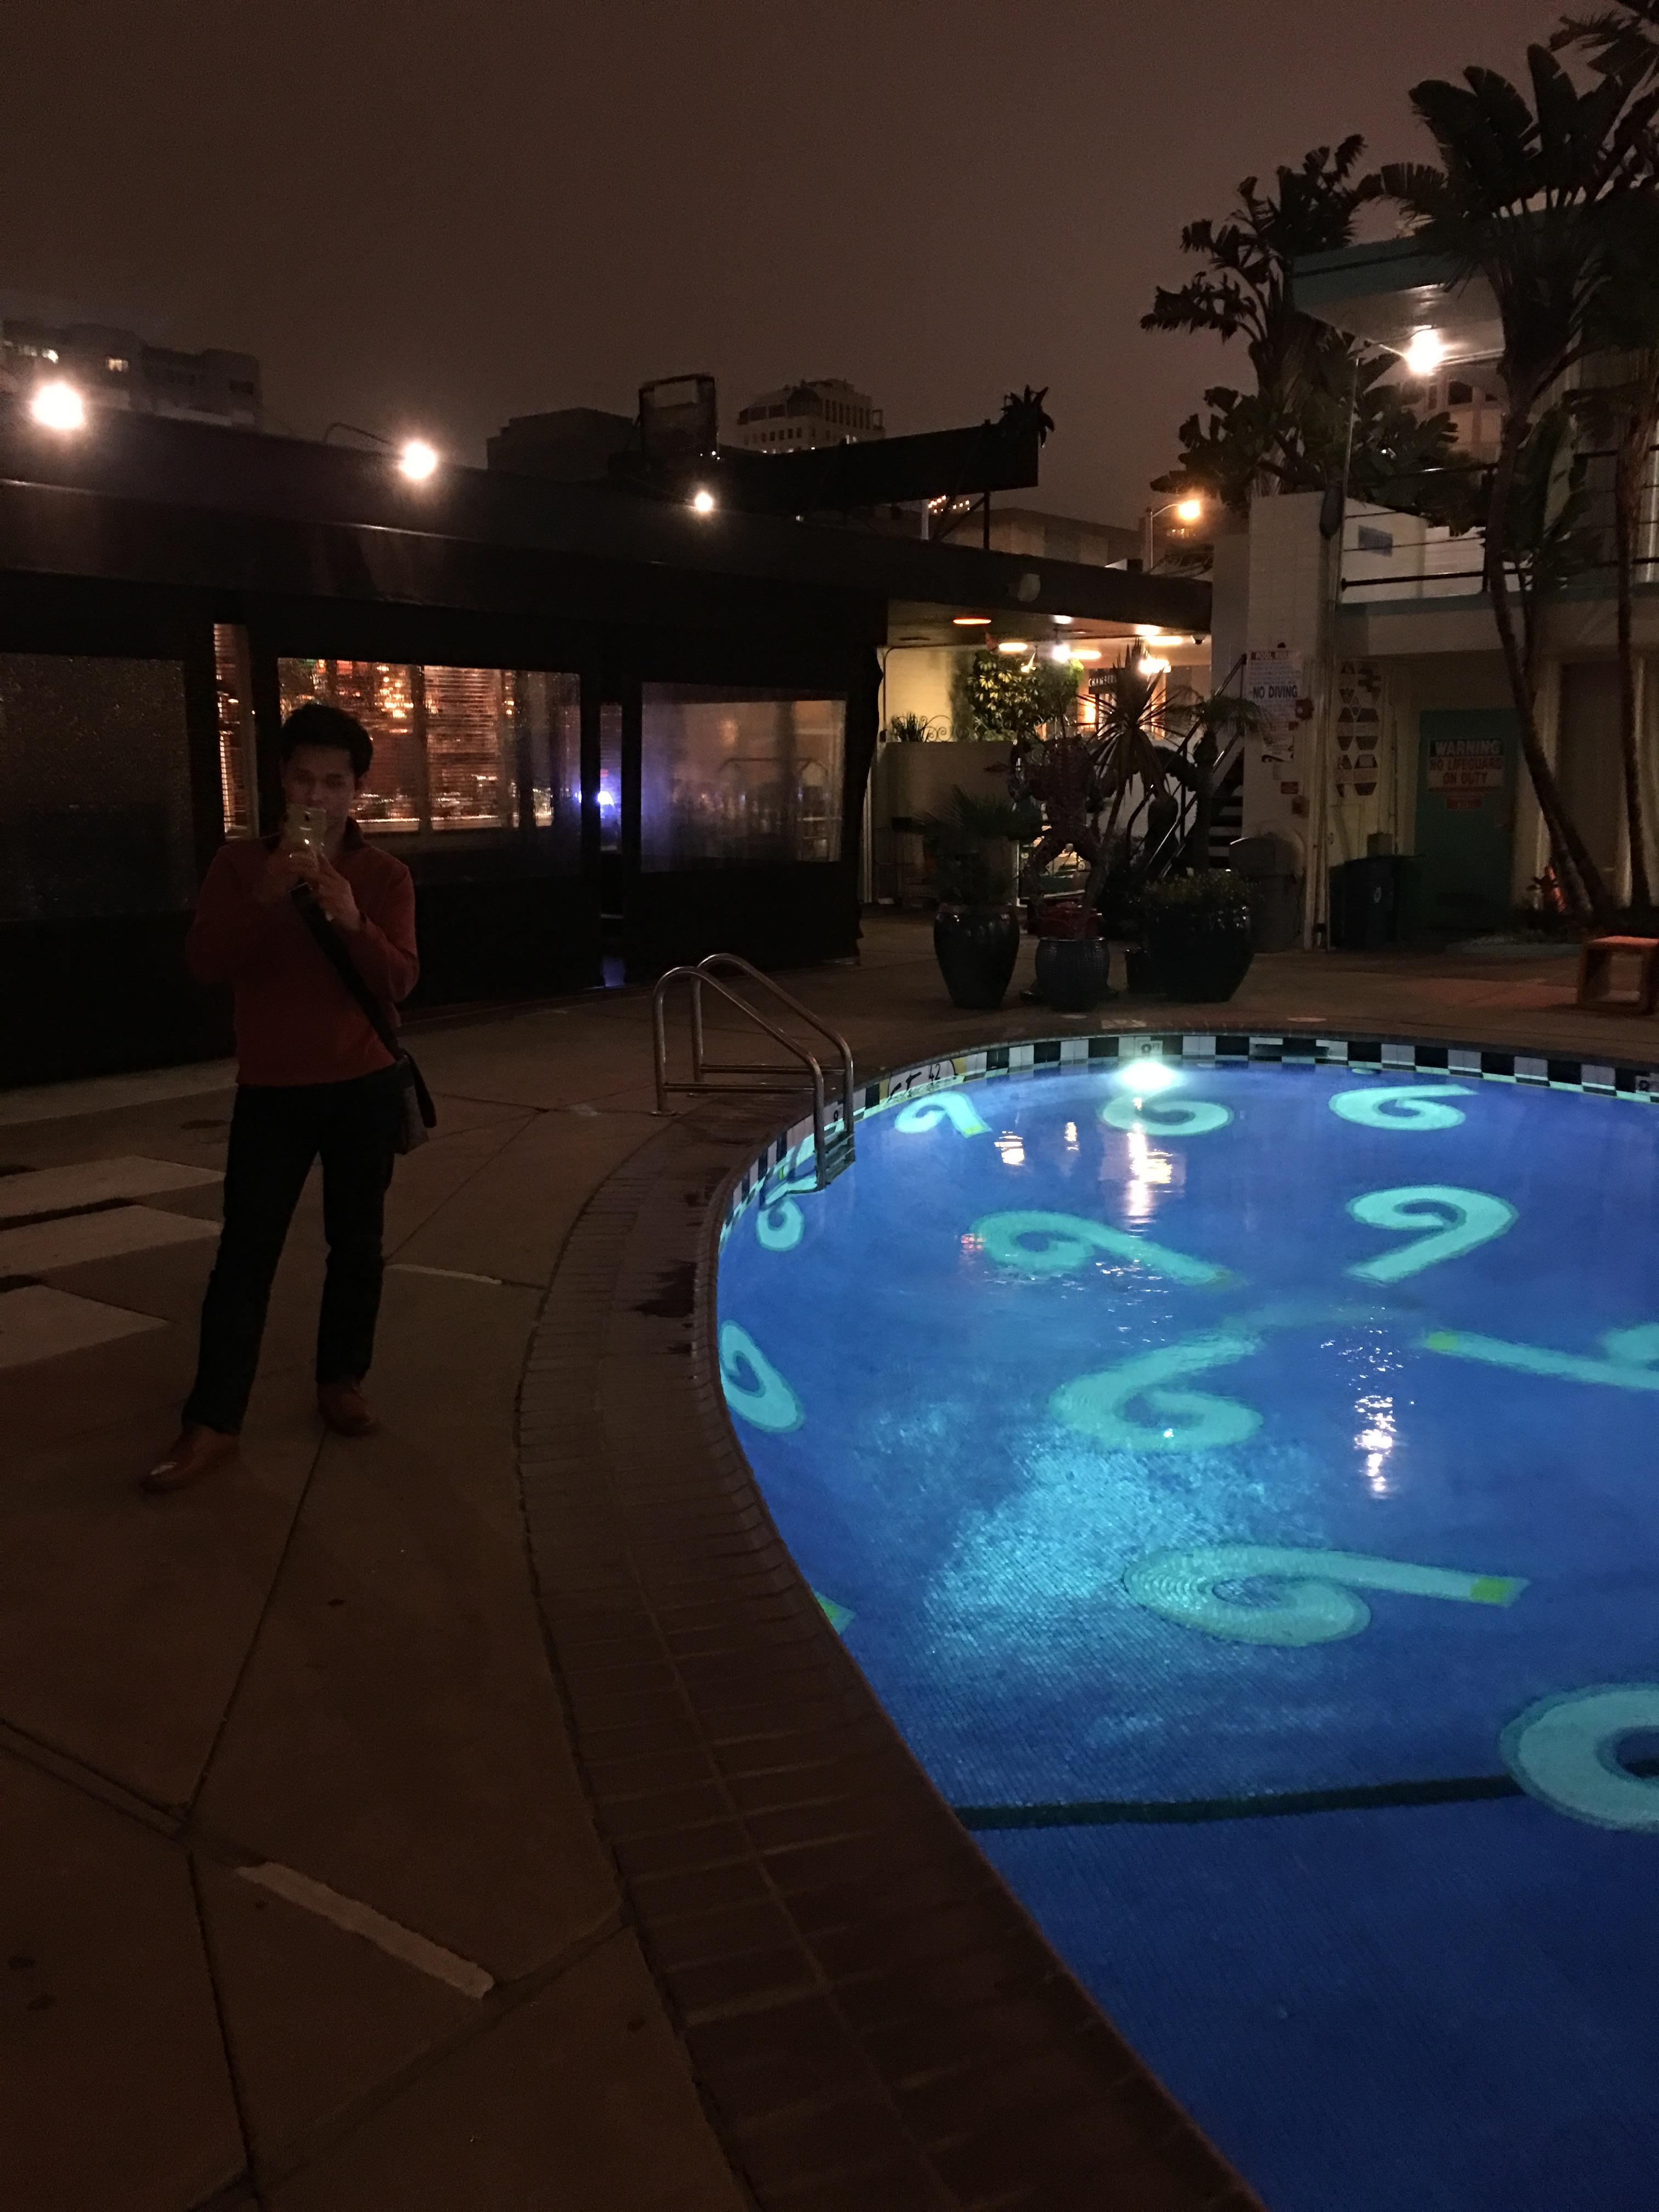 At night by the pool